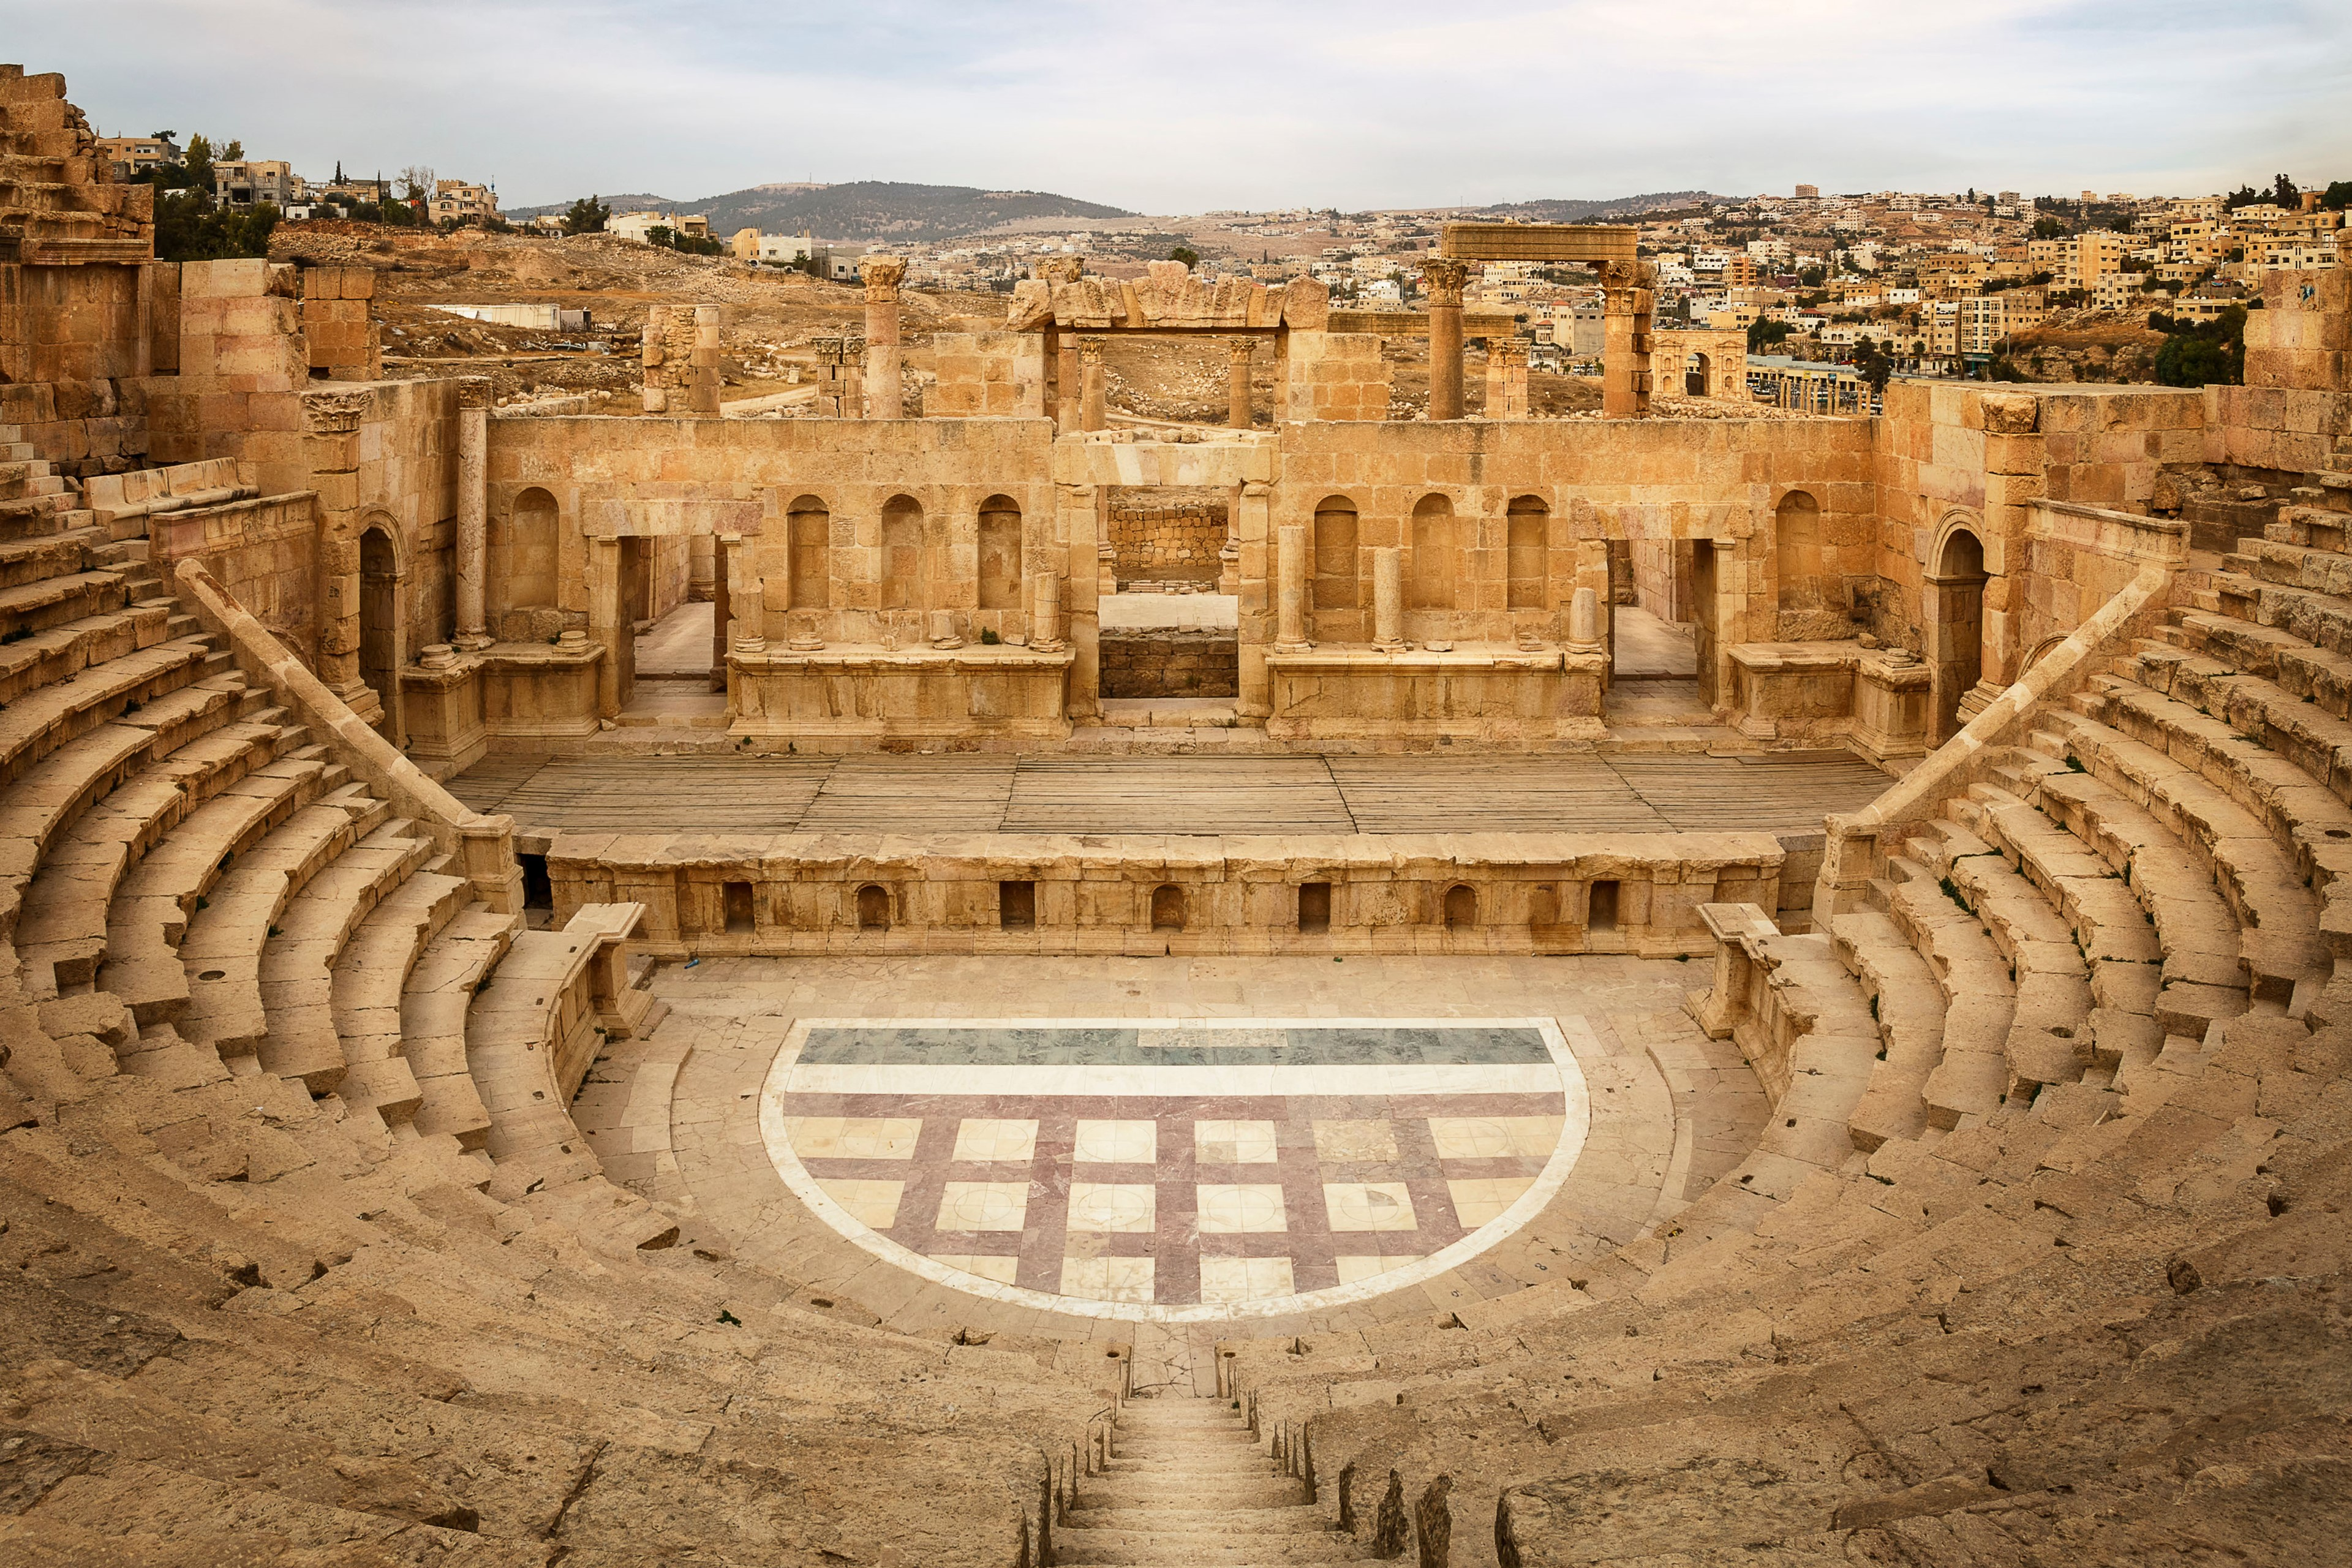 North theatre in Jerash